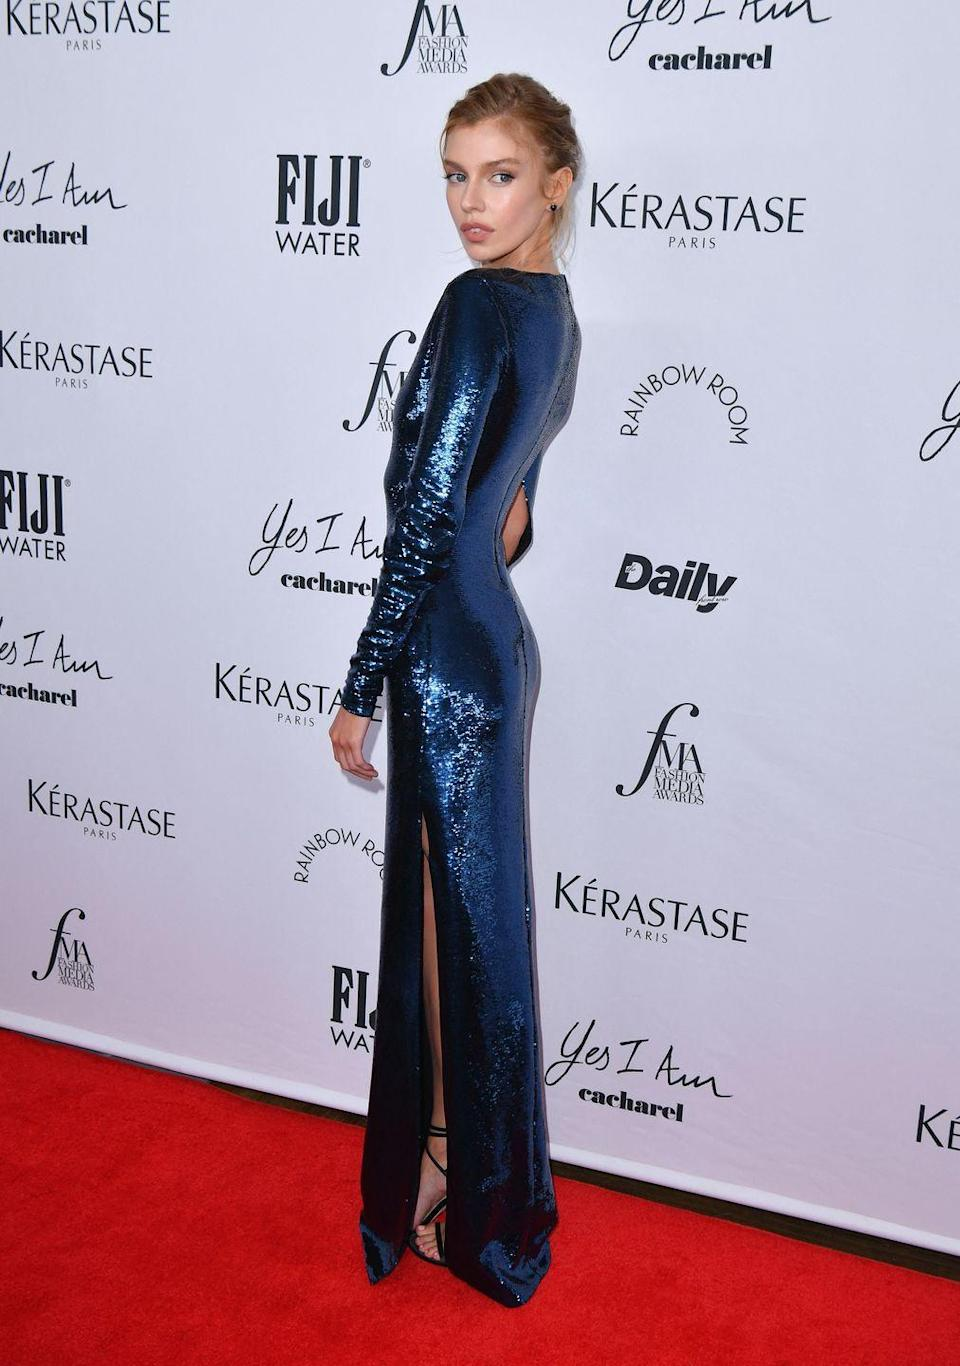 <p><strong>9 September</strong></p><p>Model Stella Maxwell wore an electric blue sequin Burberry gown to the event.</p>